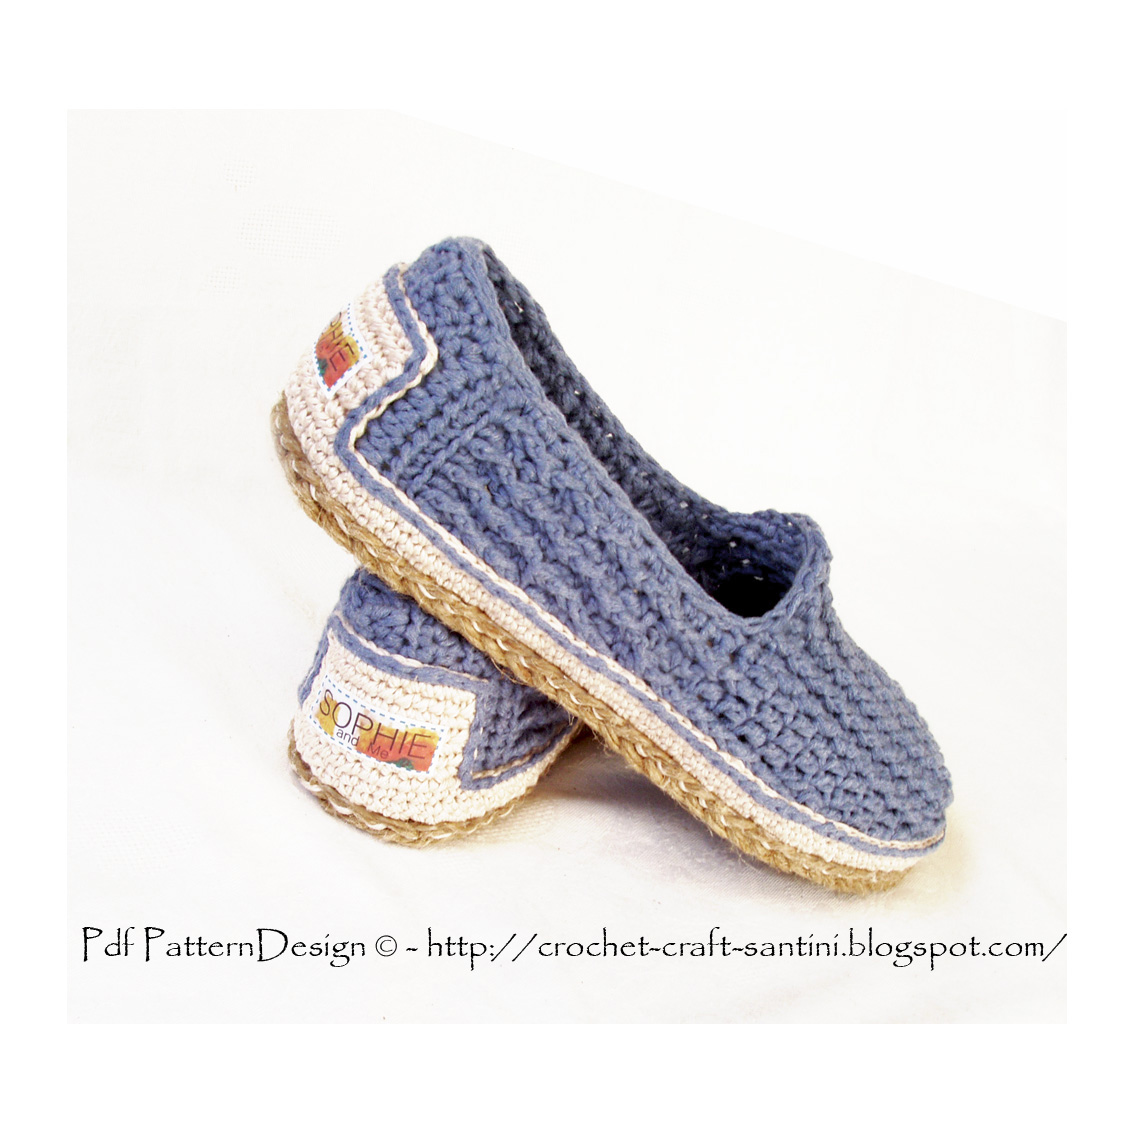 Crochet Shoes : ... crochet slippers to street Loafers! My new Denim-Slippers, added Cord